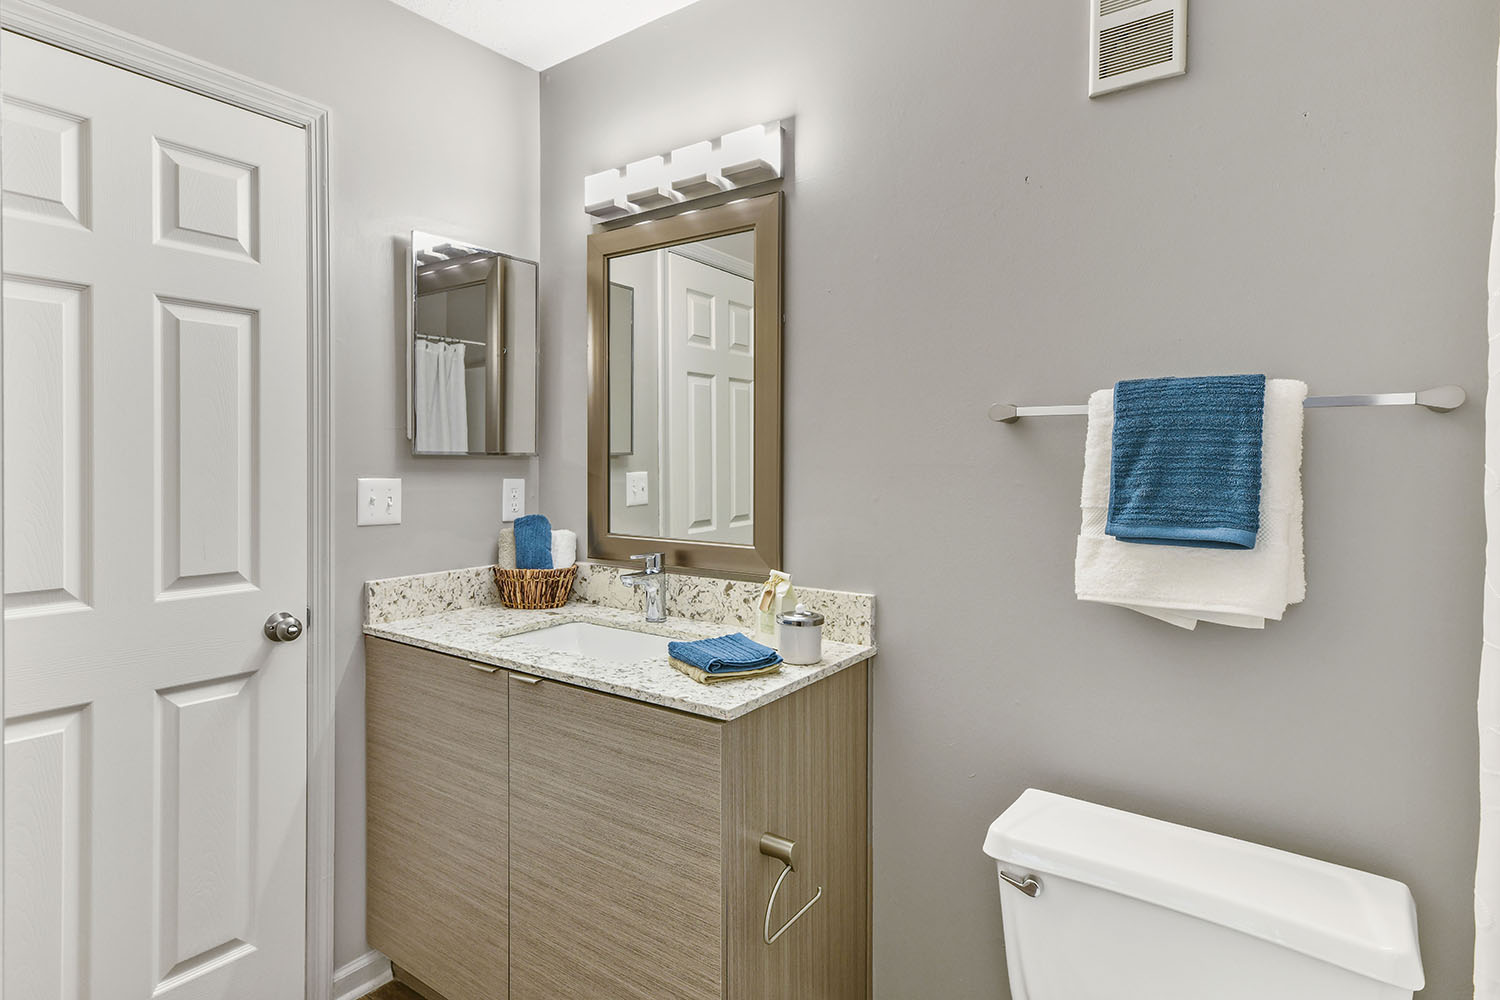 Brand New Finishes and Fixtures at Patchen Oaks Apartments, Lexington, KY,40517